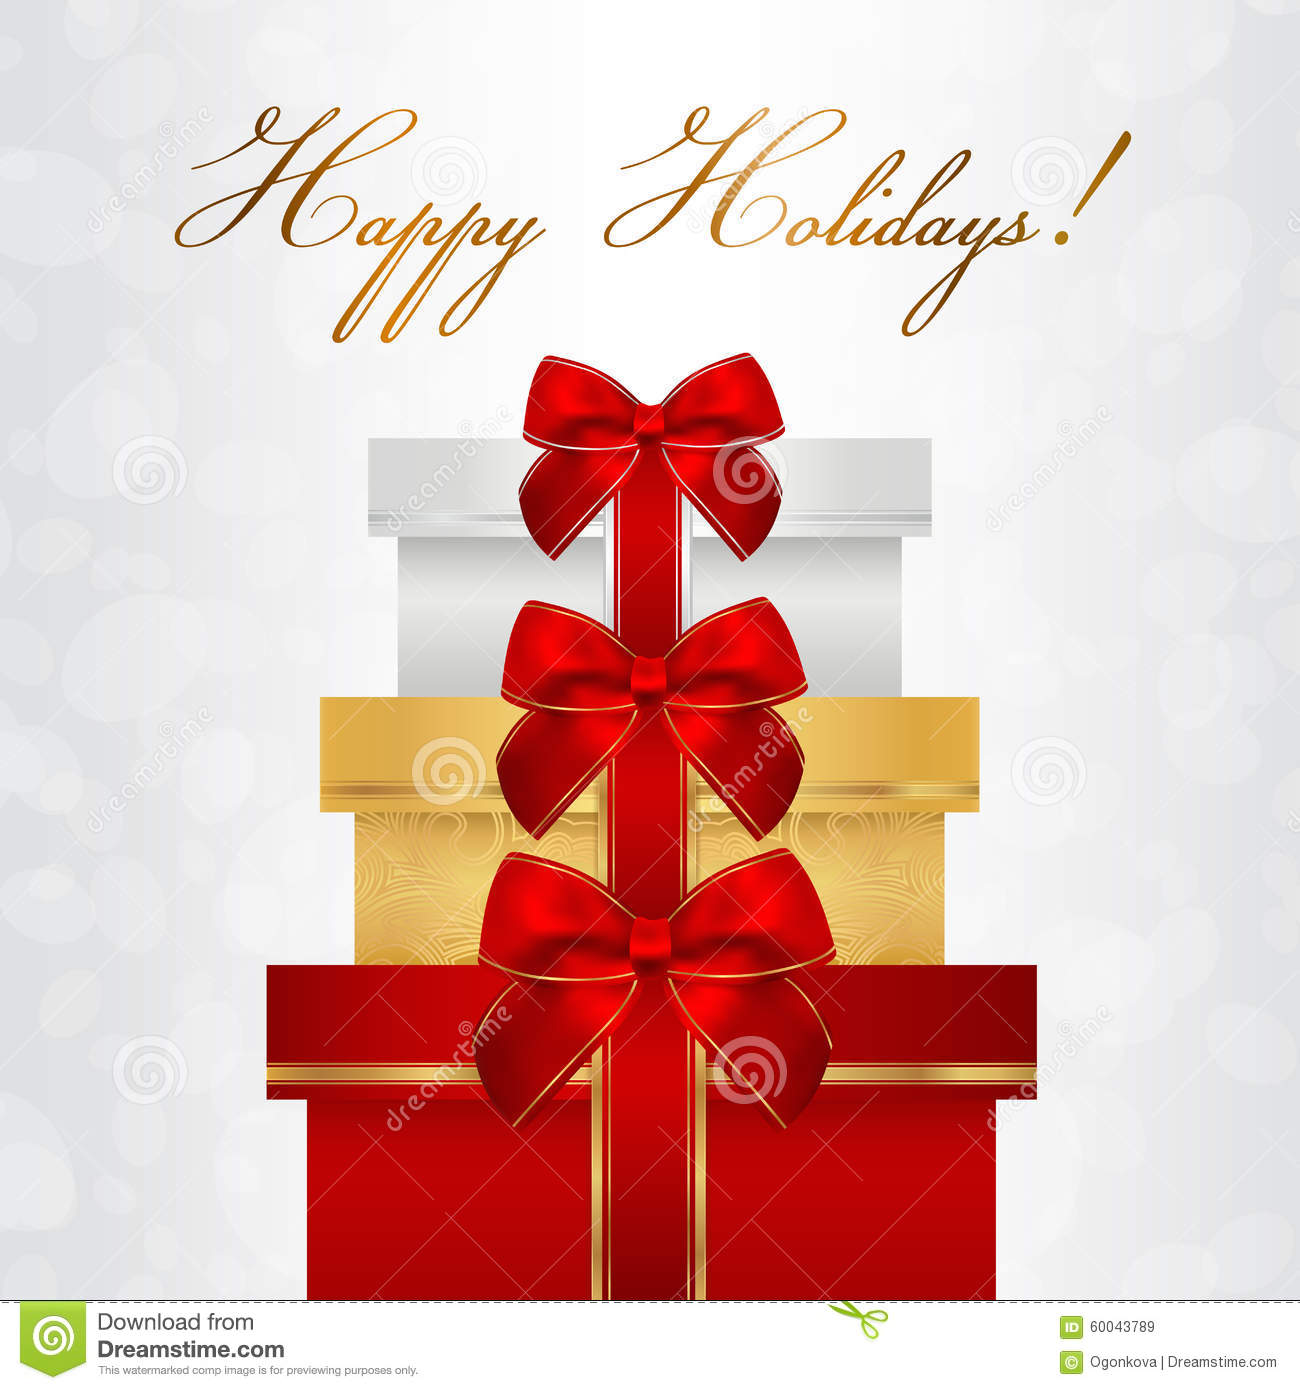 Holiday Card Christmas Card Birthday Card Gift Card greeting – Holiday Card Template